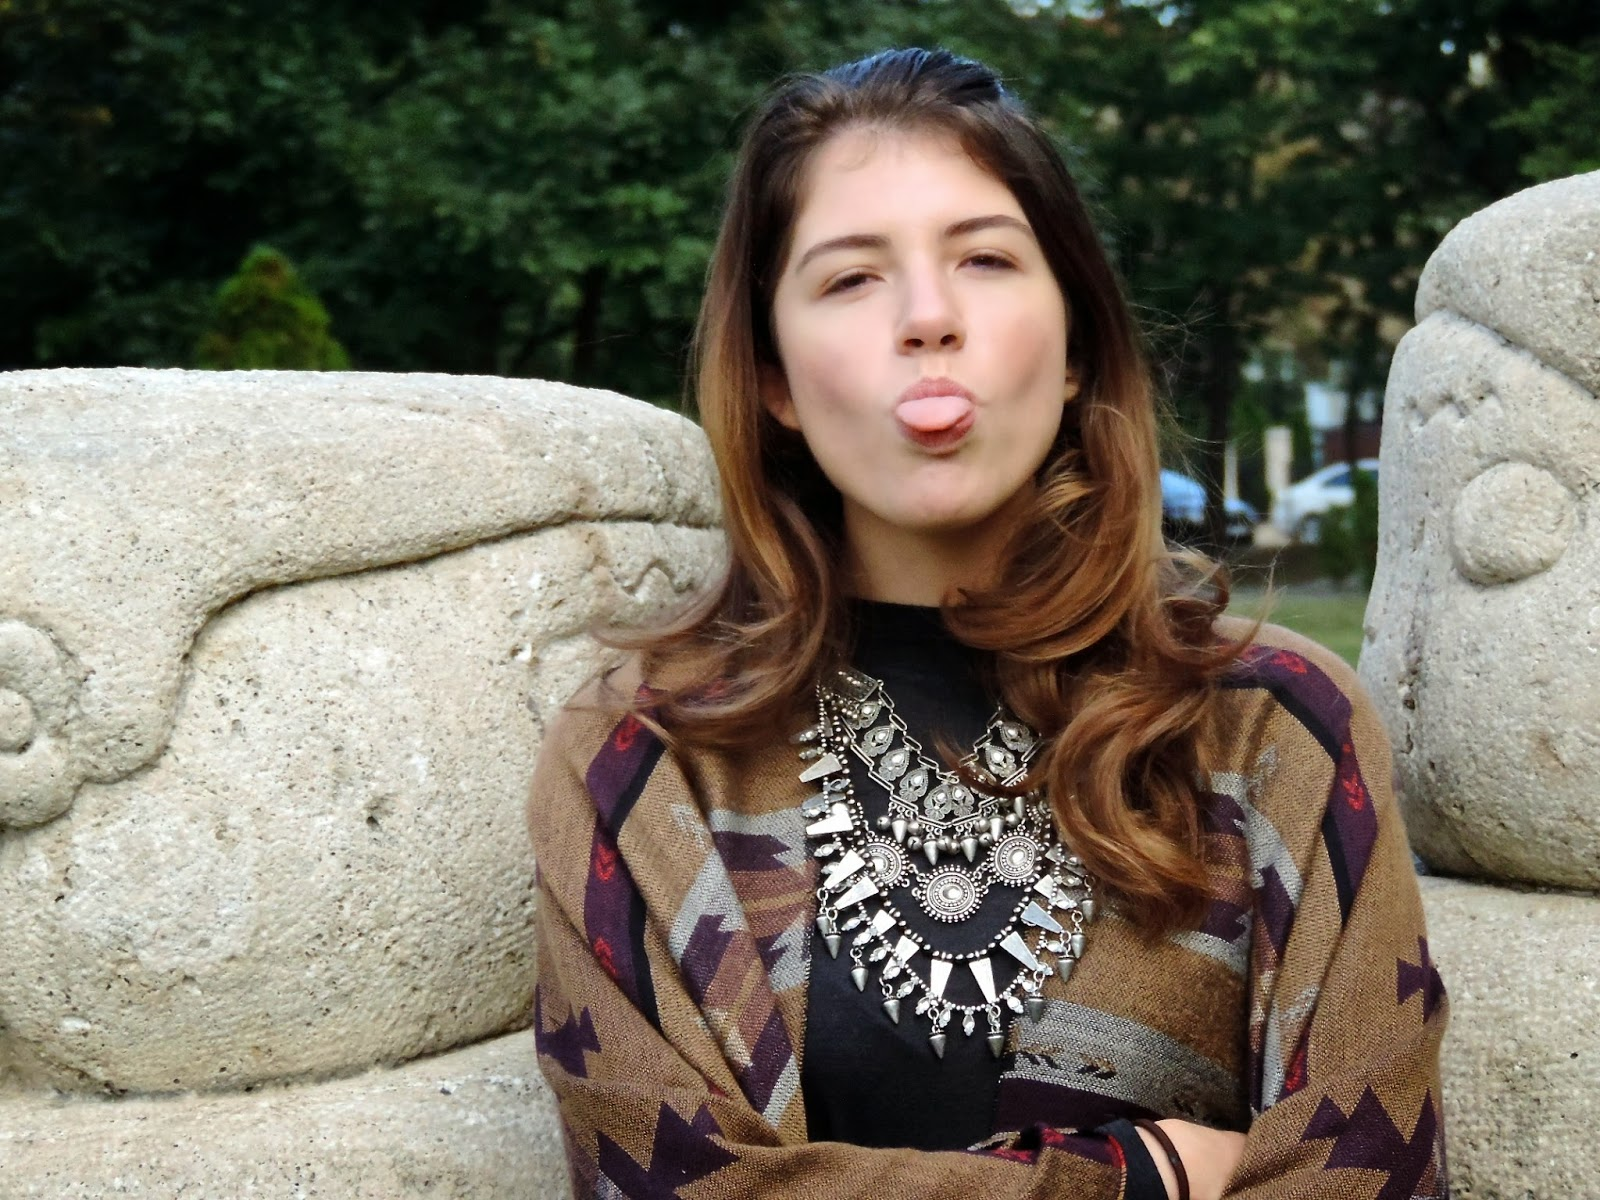 Fashion blogger pulling silly faces